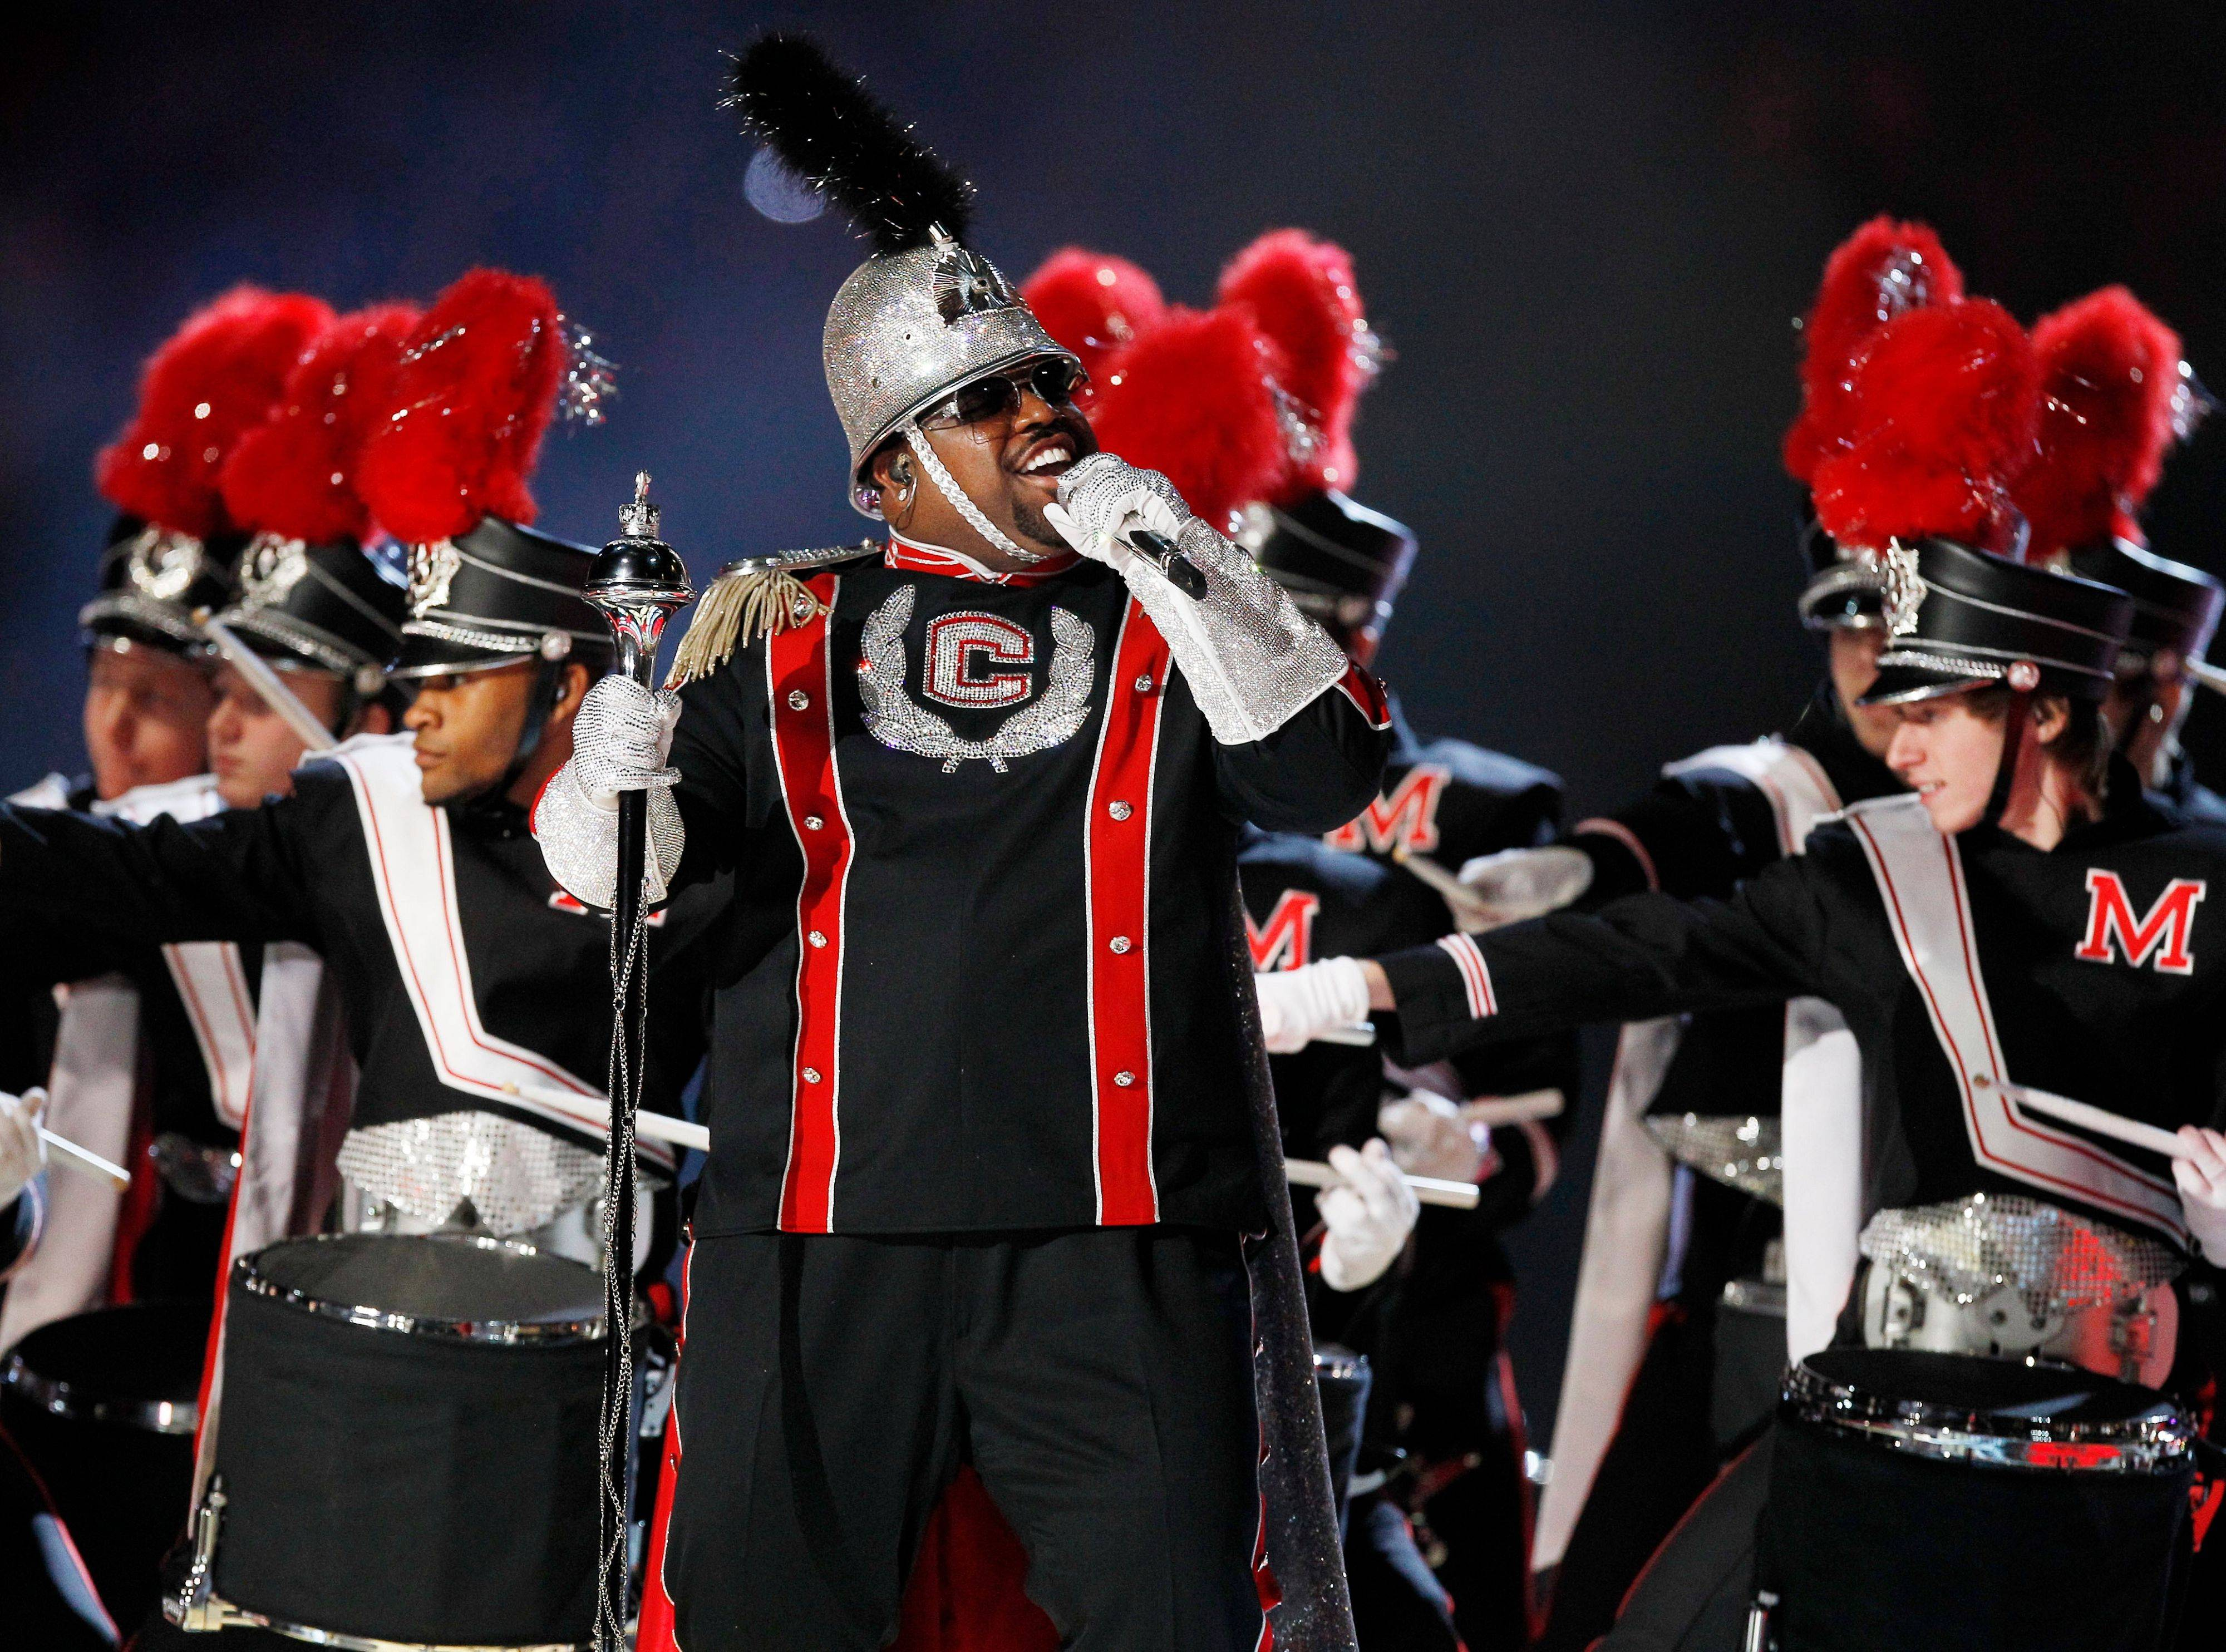 Cee Lo Green performs with Madonna at halftime of the NFL Super Bowl XLVI football game Sunday night.